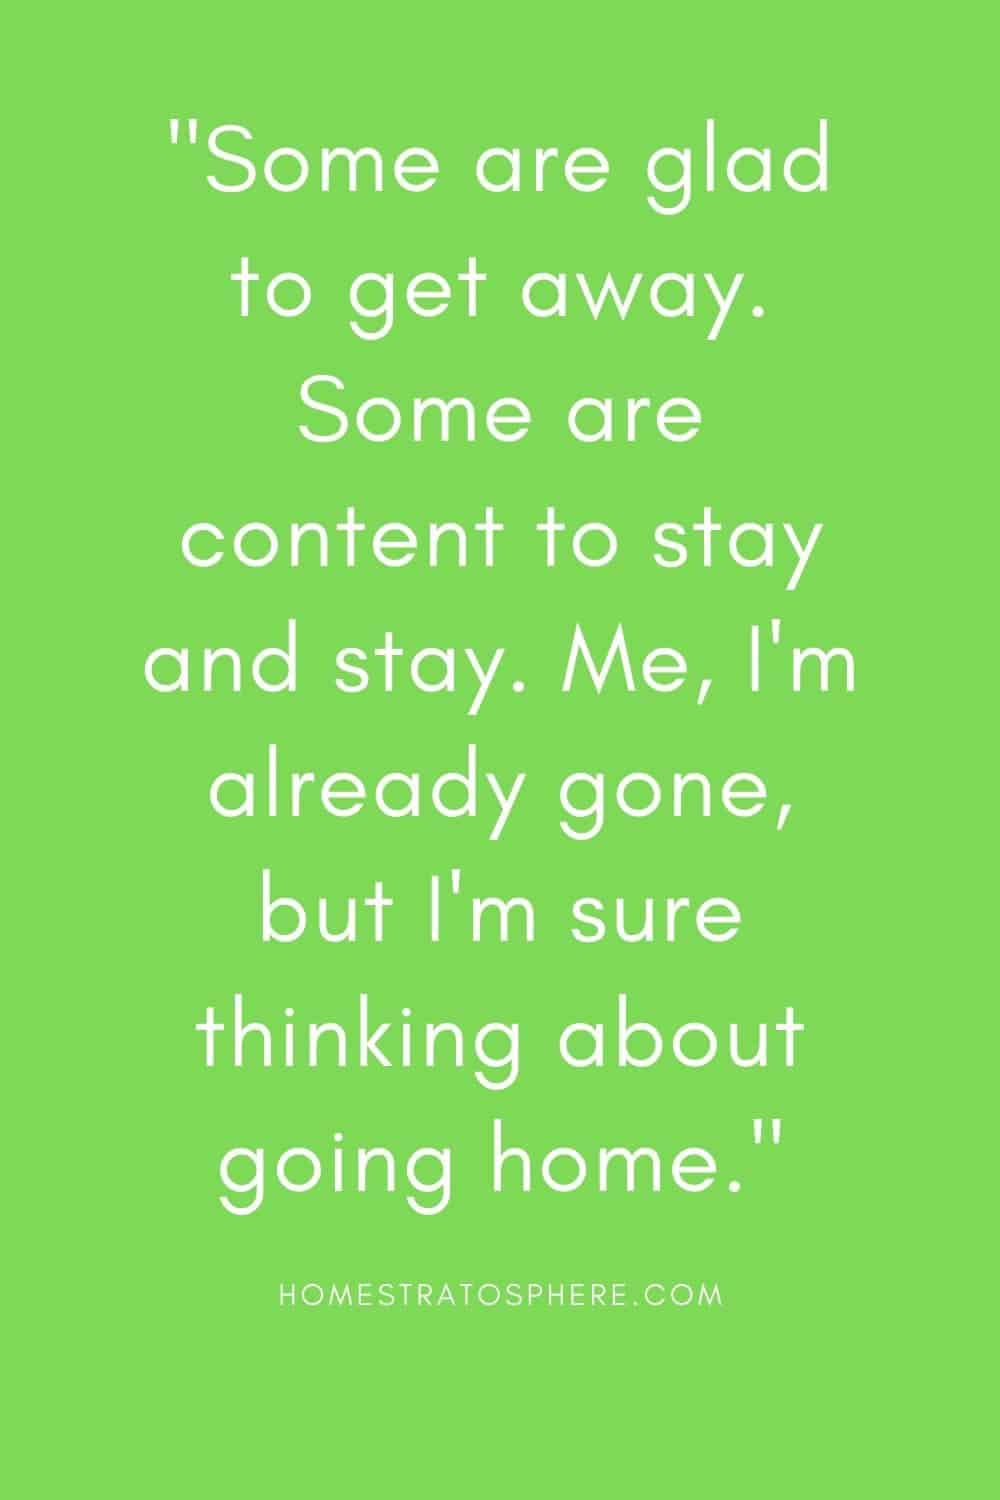 """""""Some are glad to get away. Some are content to stay and stay. Me, I'm already gone, but I'm sure thinking about going home."""""""